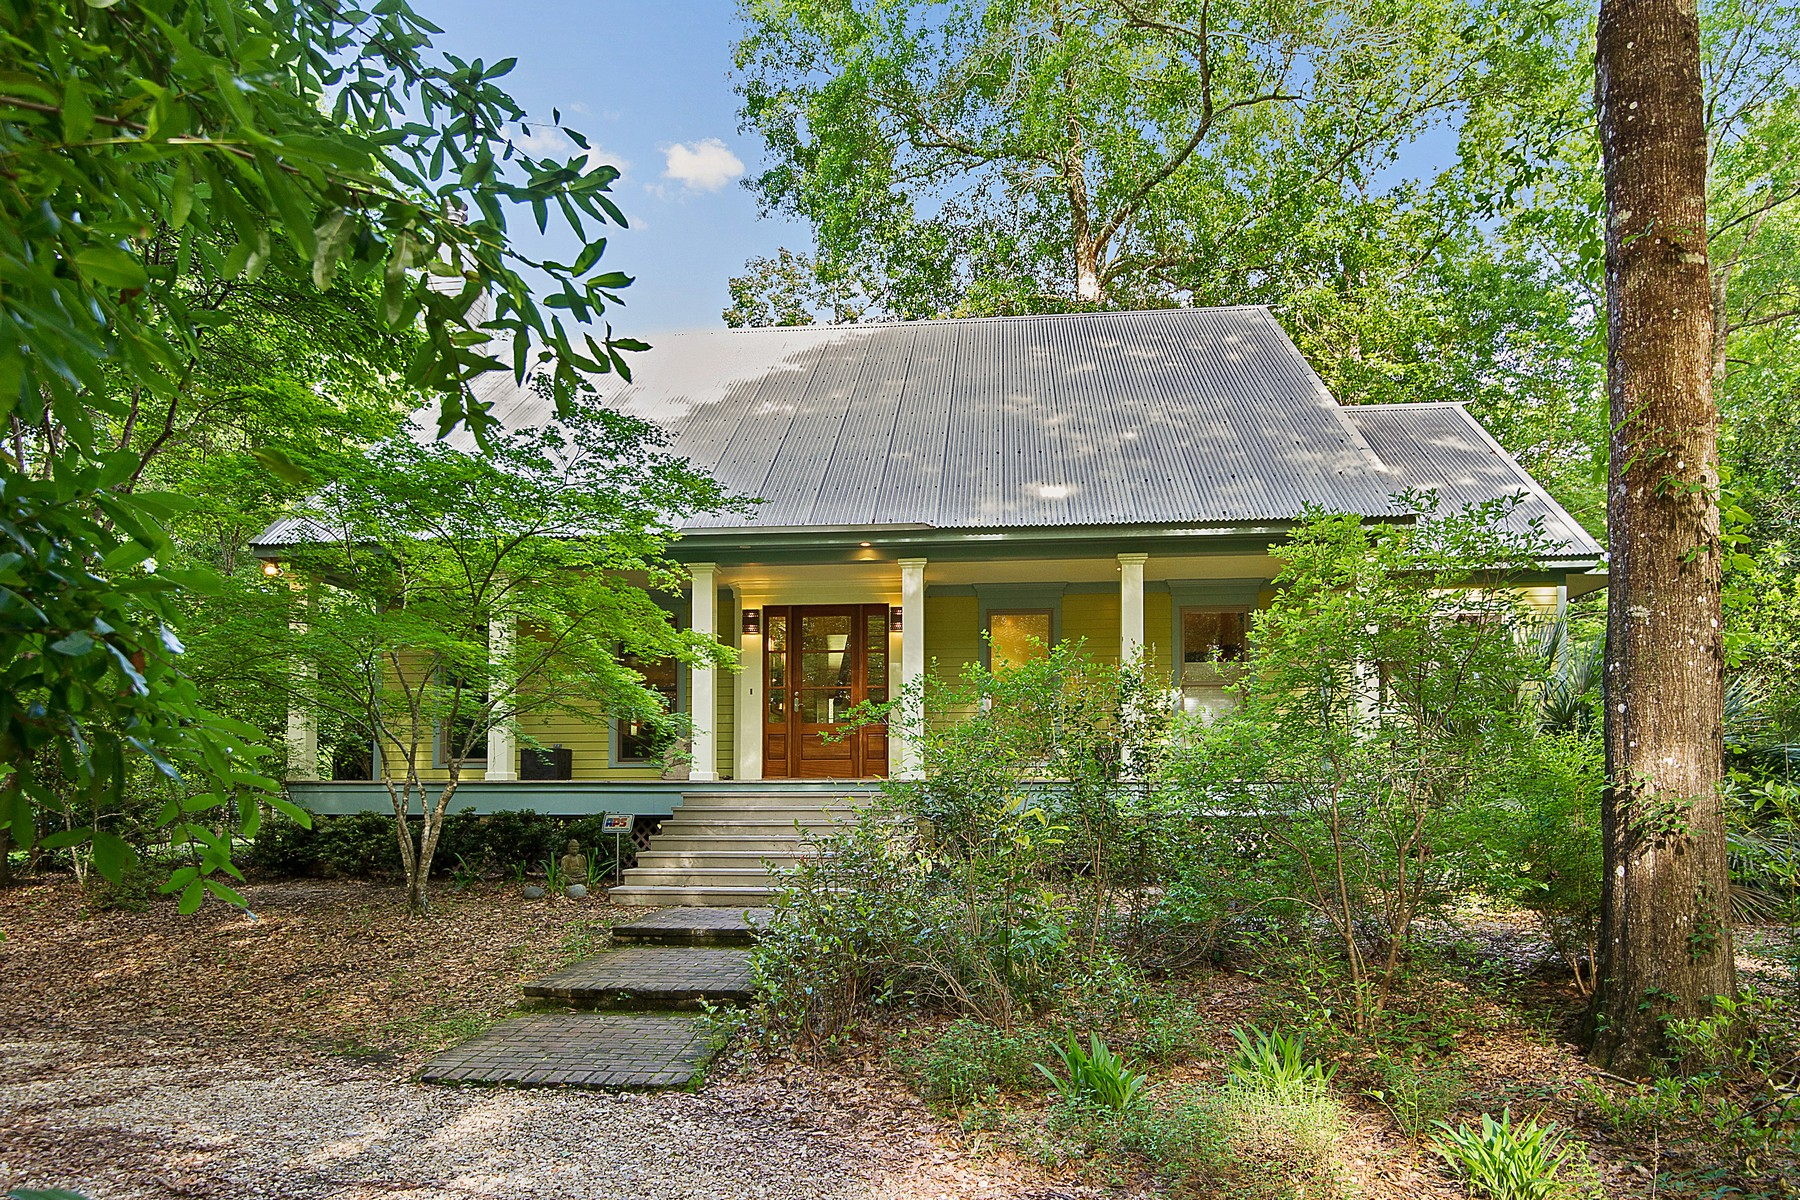 Single Family Home for Sale at 78656 Turnpike Rd Folsom, Louisiana 70437 United States